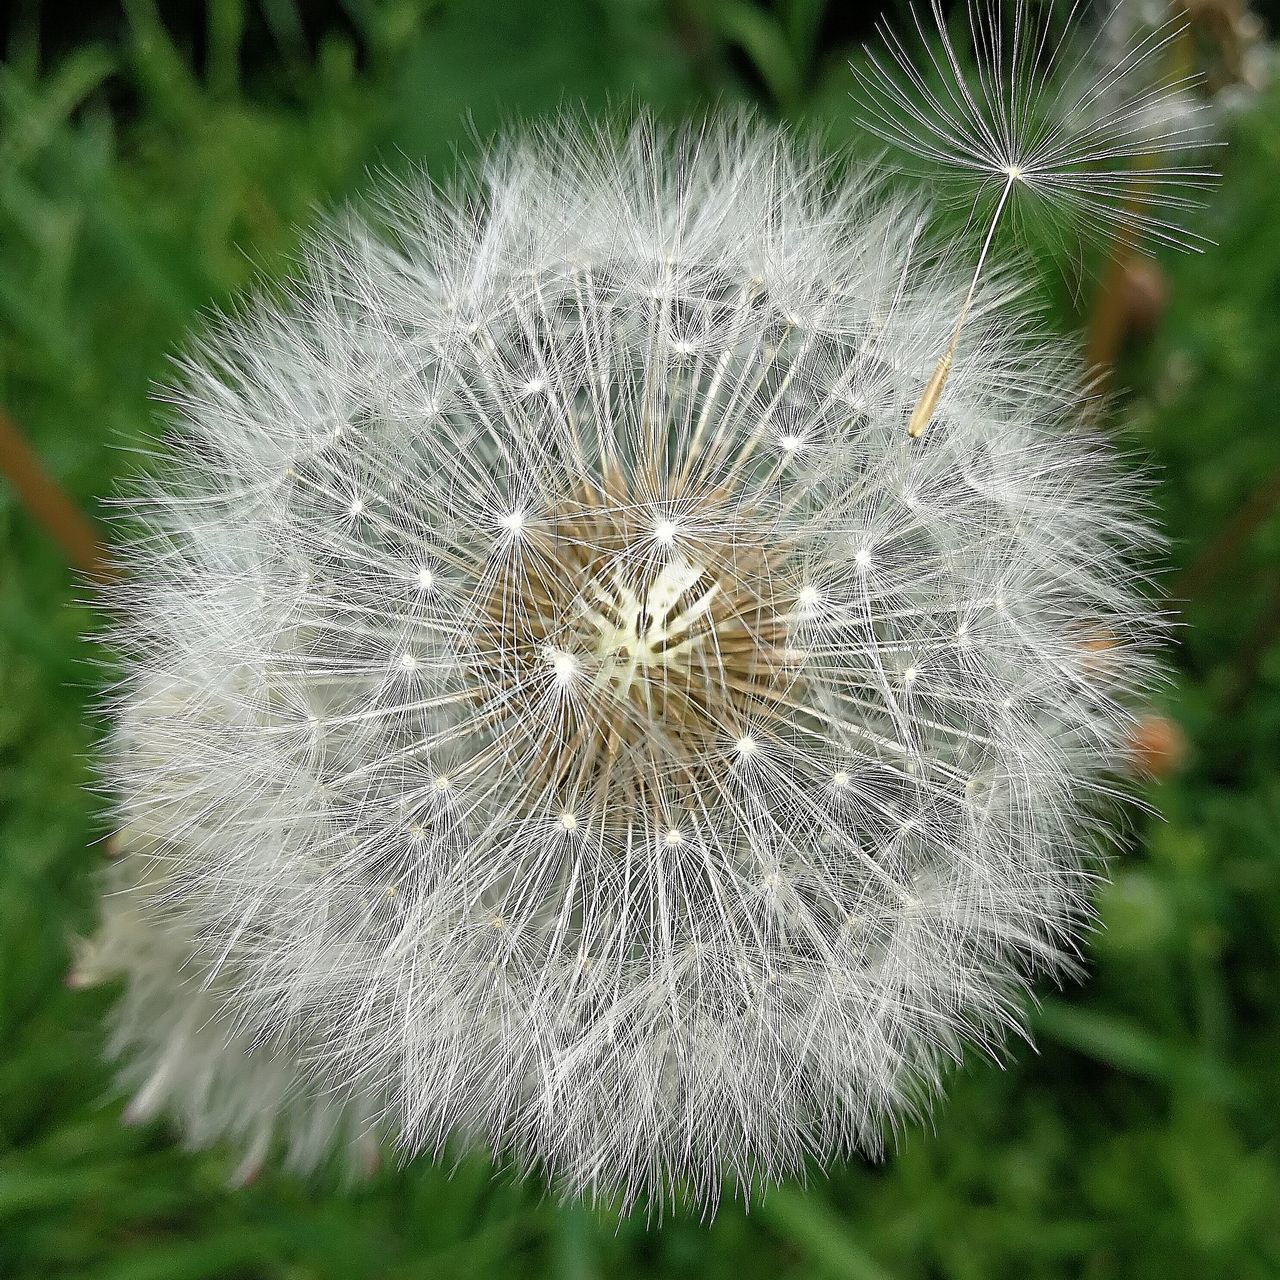 dandelion, flower, delicate, growth, softness, nature, relaxed moments, tissue, plant, close-up, fragility, flower head, no people, freshness, outdoors, day